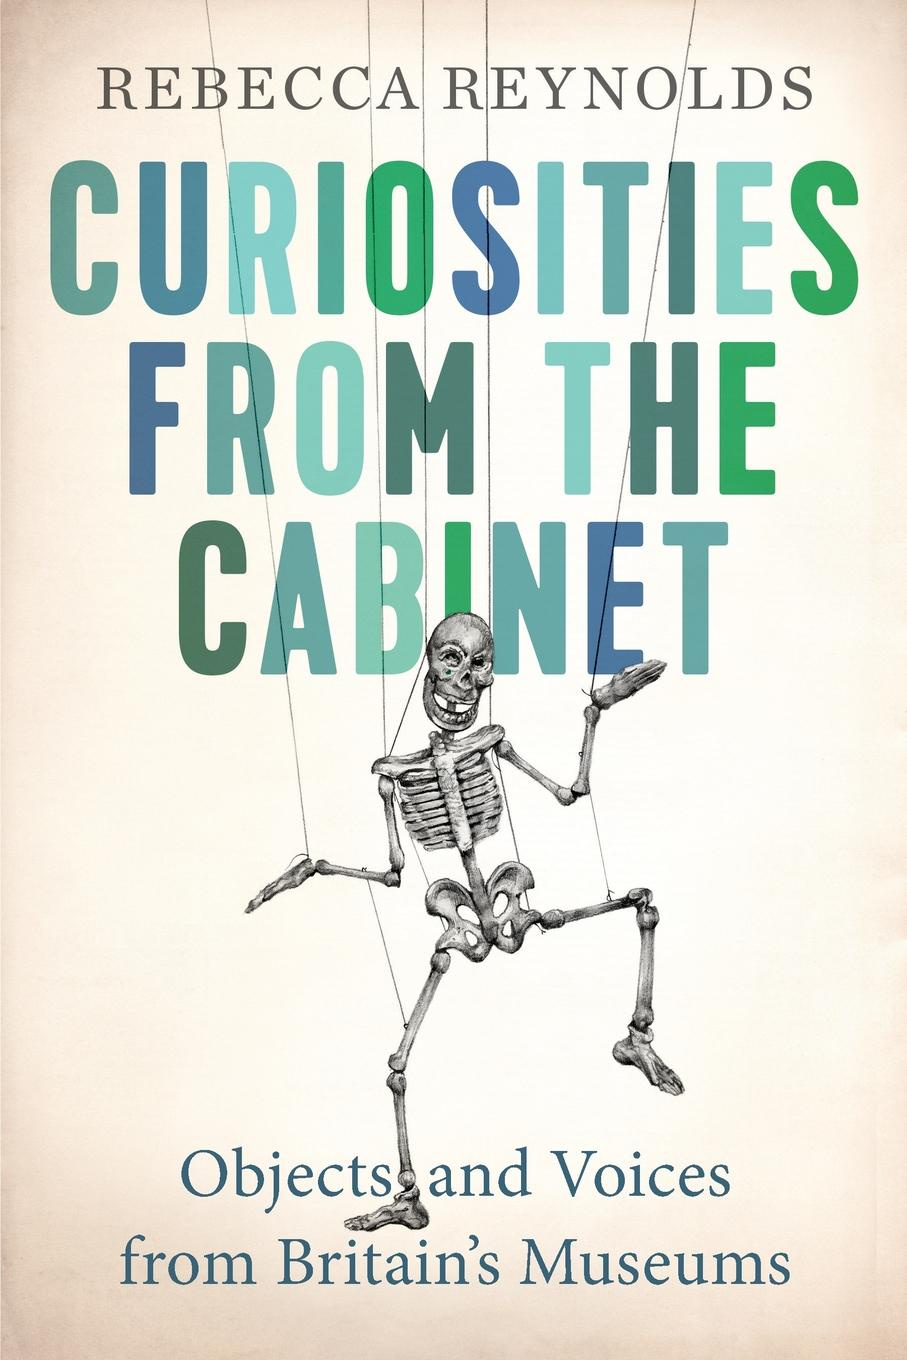 Rebecca Reynolds Curiosities from the Cabinet. Objects and Voices from Britain.s Museums